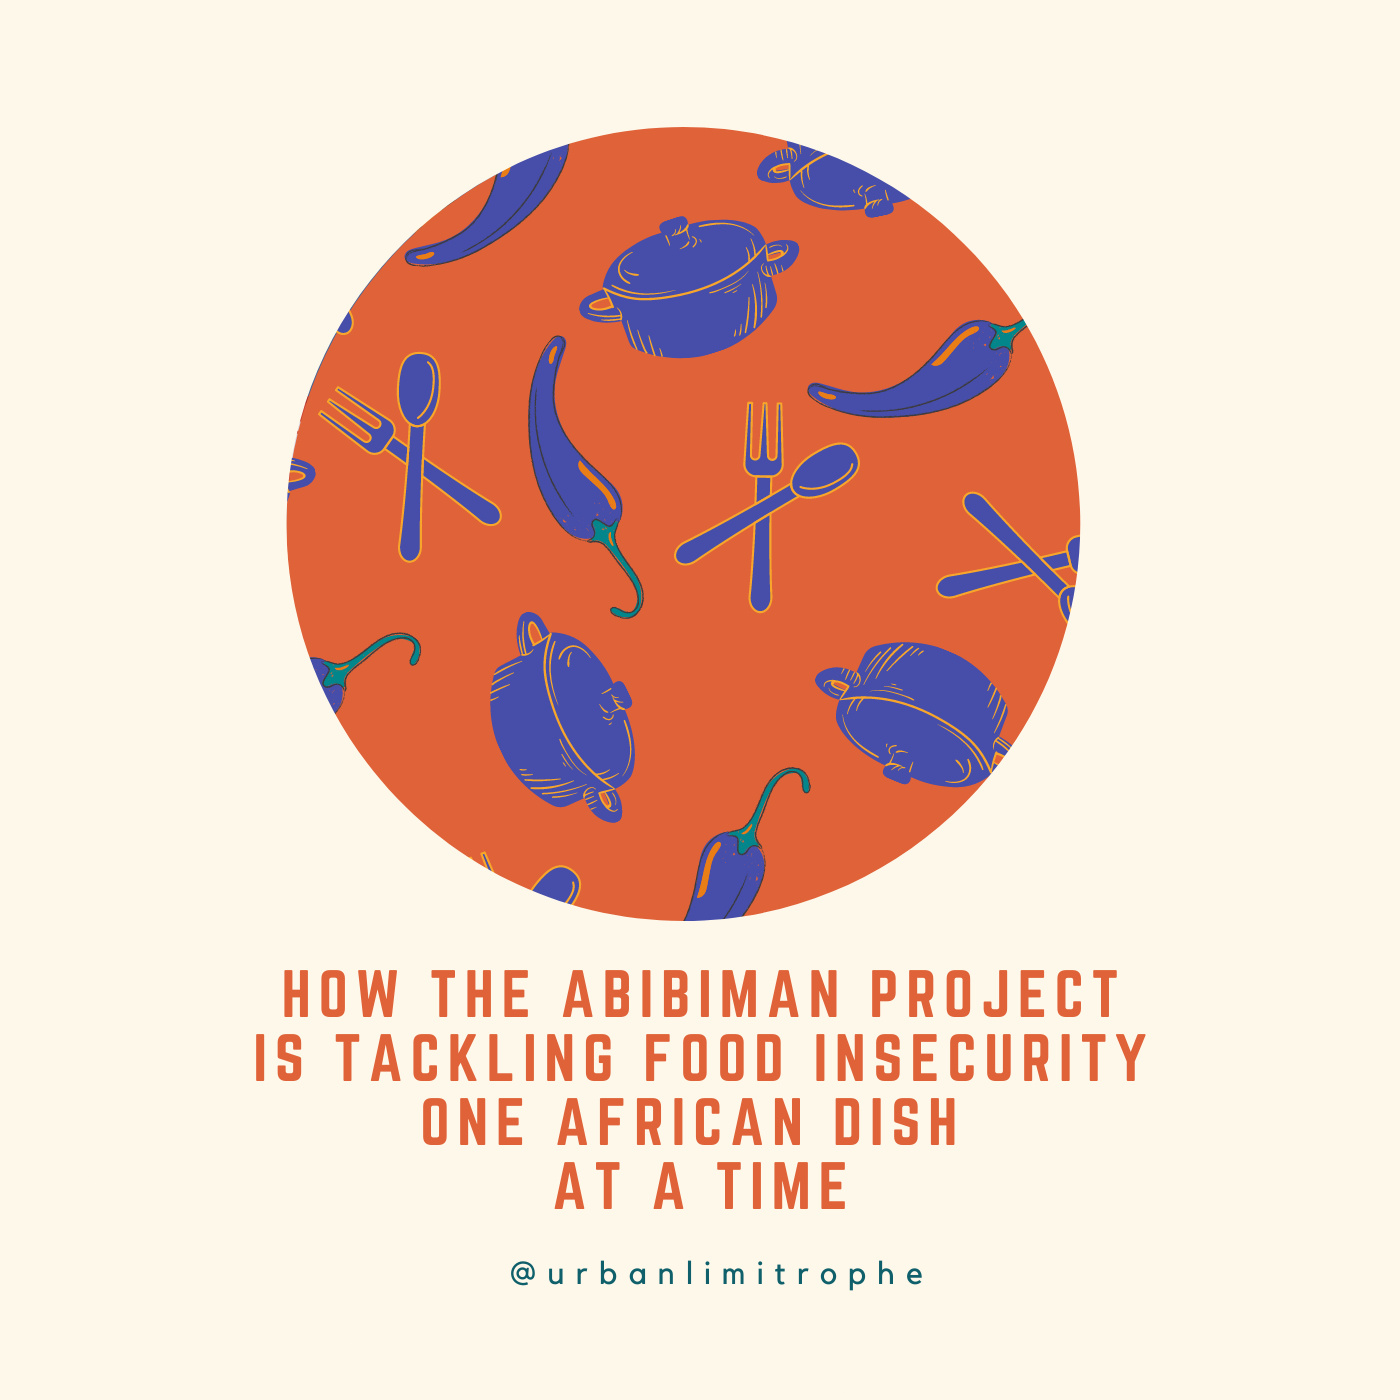 Episode 3: How The Abibiman Project is Tackling Food Insecurity One African Dish at a Time | Urban Limitrophe Podcast #cities #foodsecurity #podcast